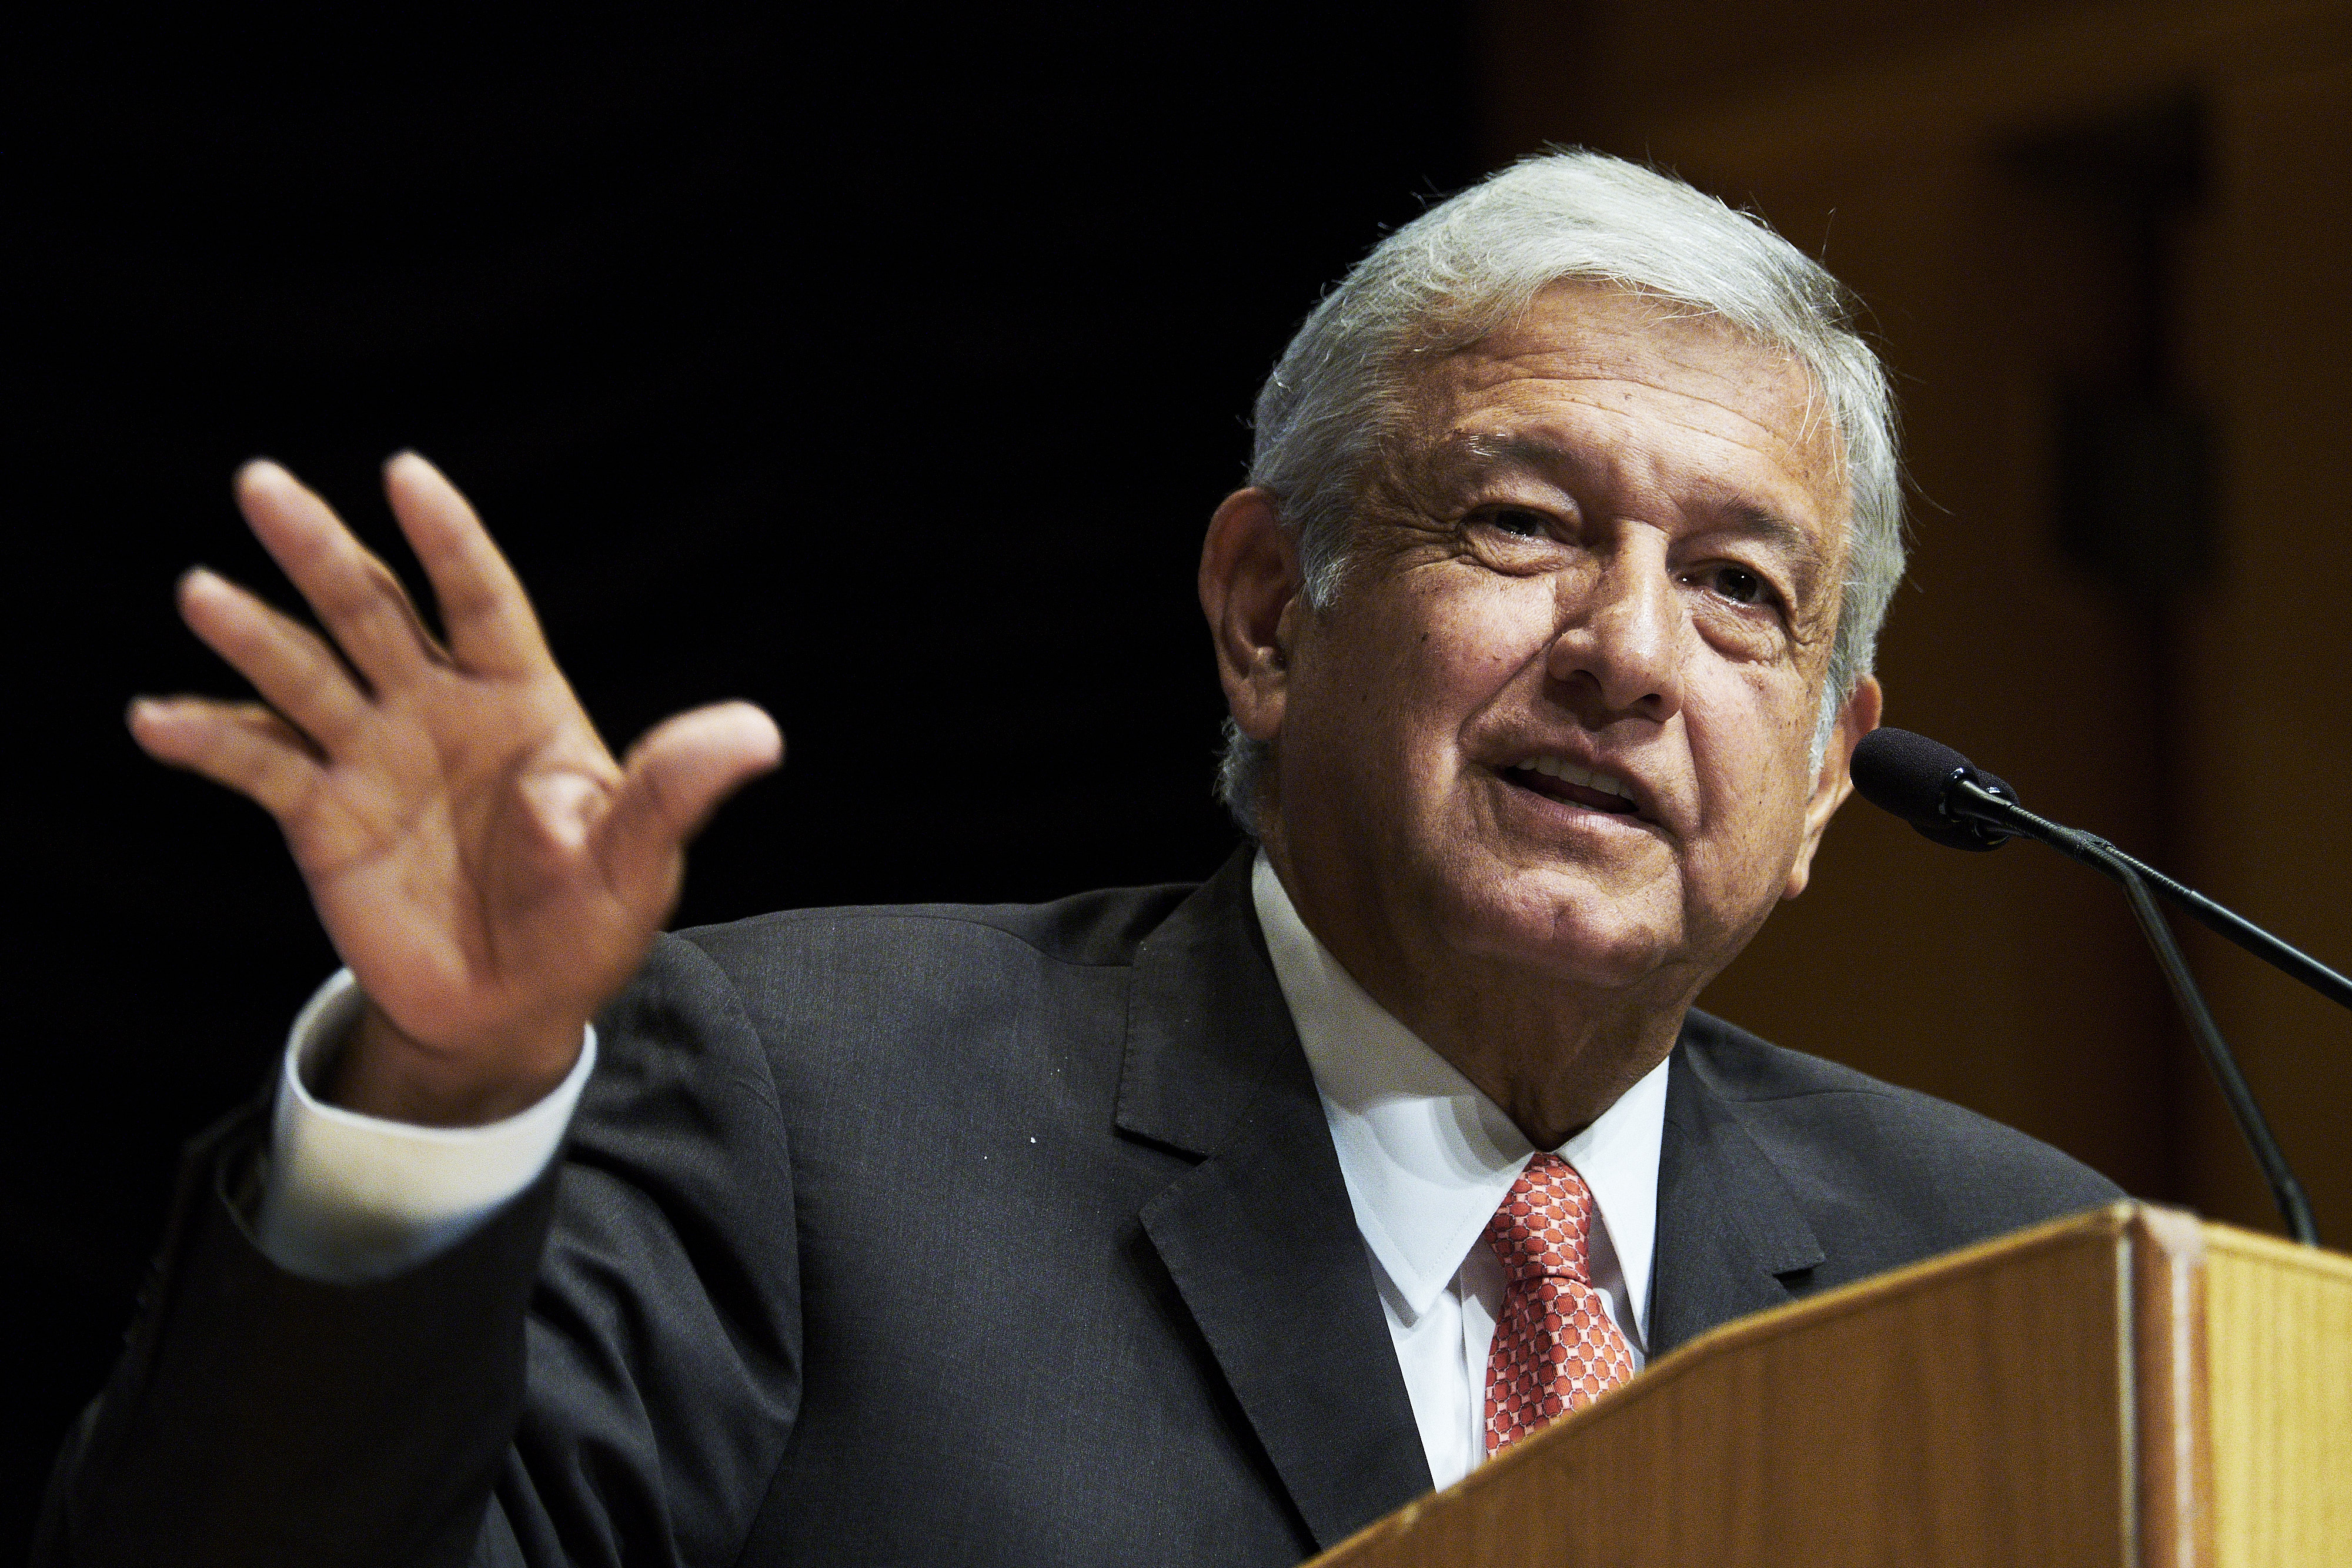 Andres Manuel Lopez Obrador, president of the left-wing political party National Regeneration Movement (MORENA), speaks during a 2018 Mexico Elections event  in Washington, D.C., U.S., on Sept. 5, 2017